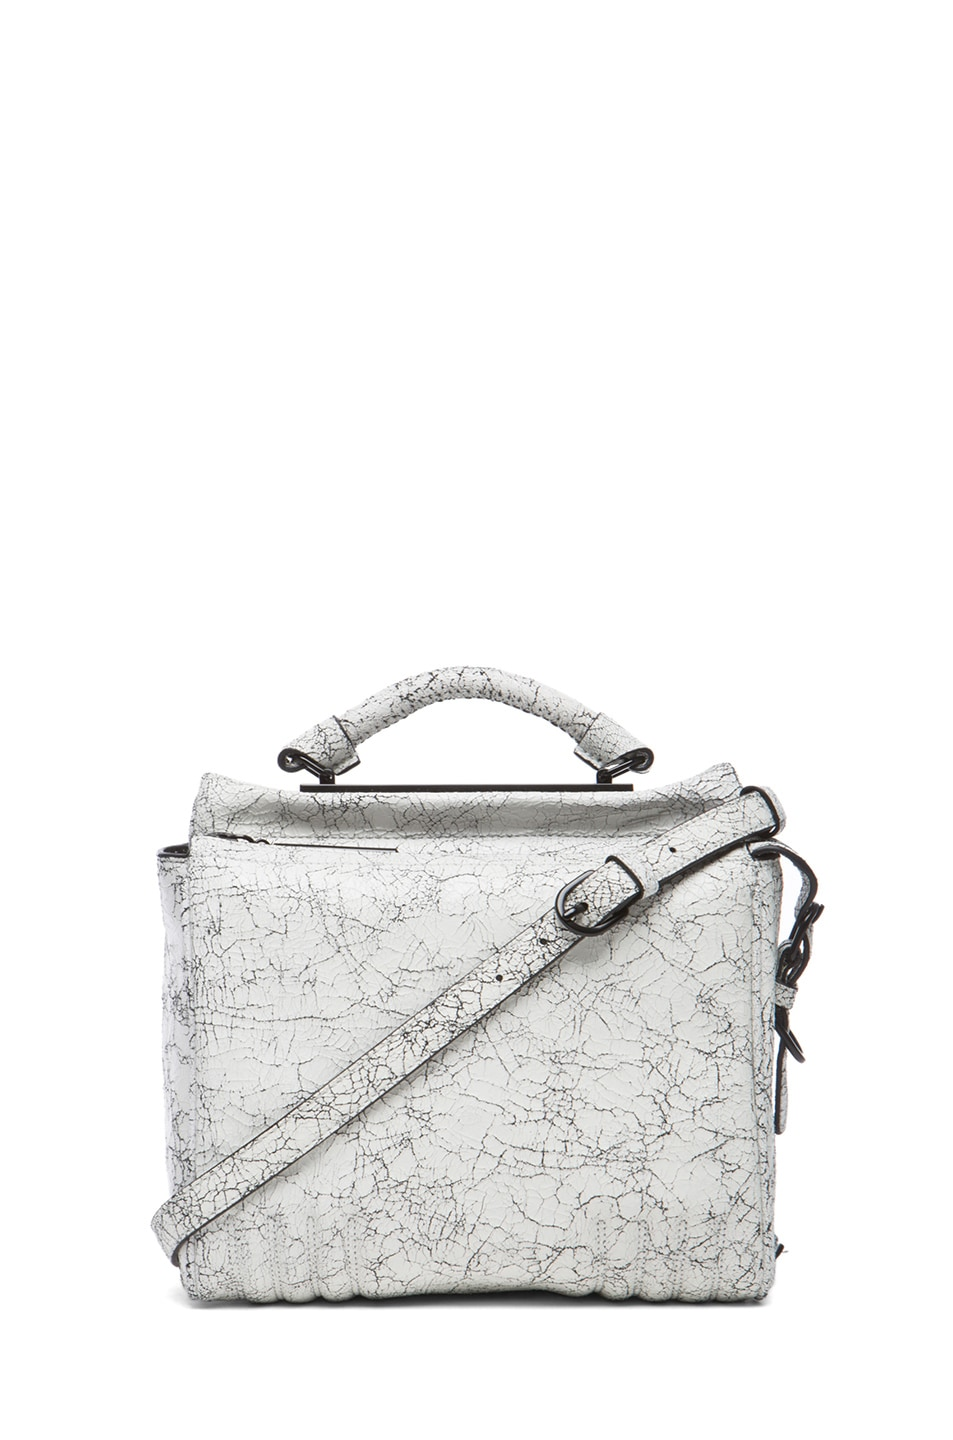 Image 1 of 3.1 phillip lim Small Ryder Satchel in Black & White